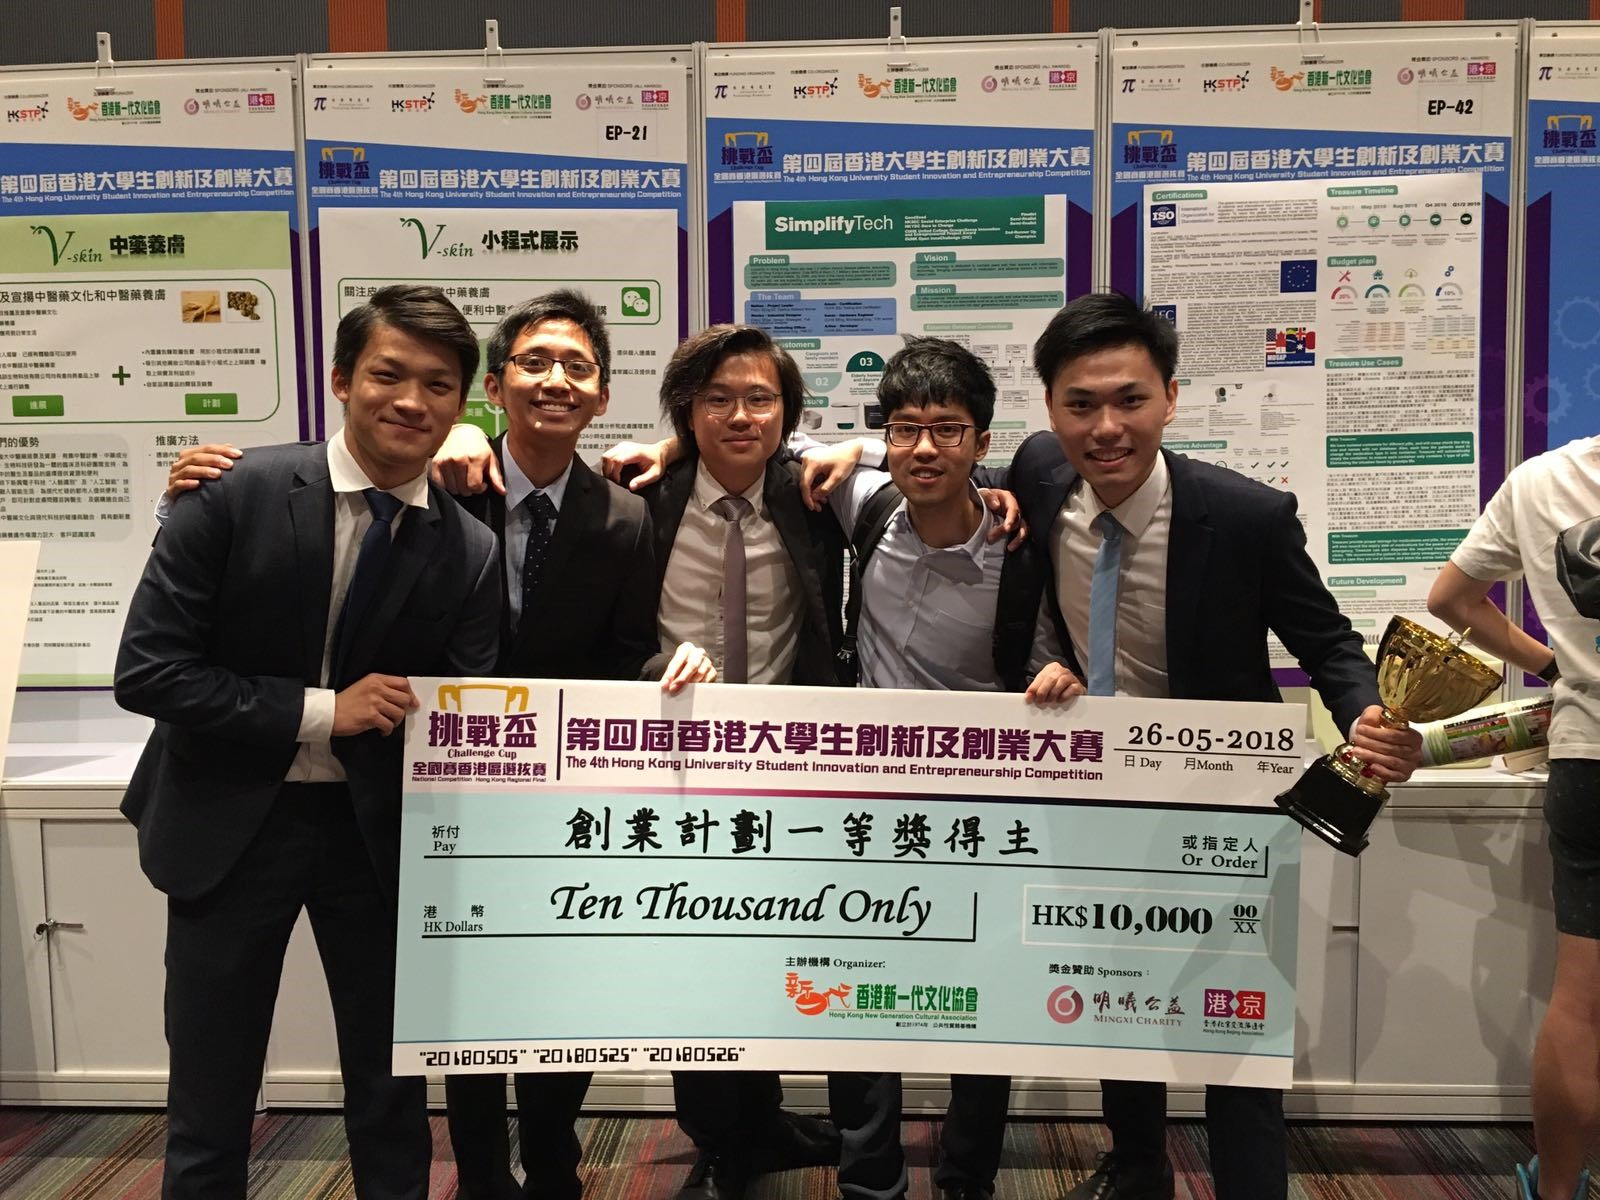 """""""Treasure"""" all-in-one pill management system has been awarded a first-class award in Entrepreneurship Proposal. Team members are: (from left) IAM Wai Yin, LI Cheuk-man Chapmann, HO Nathaniel, HUANG Chuen-Wei and TSANG Ming Hei."""